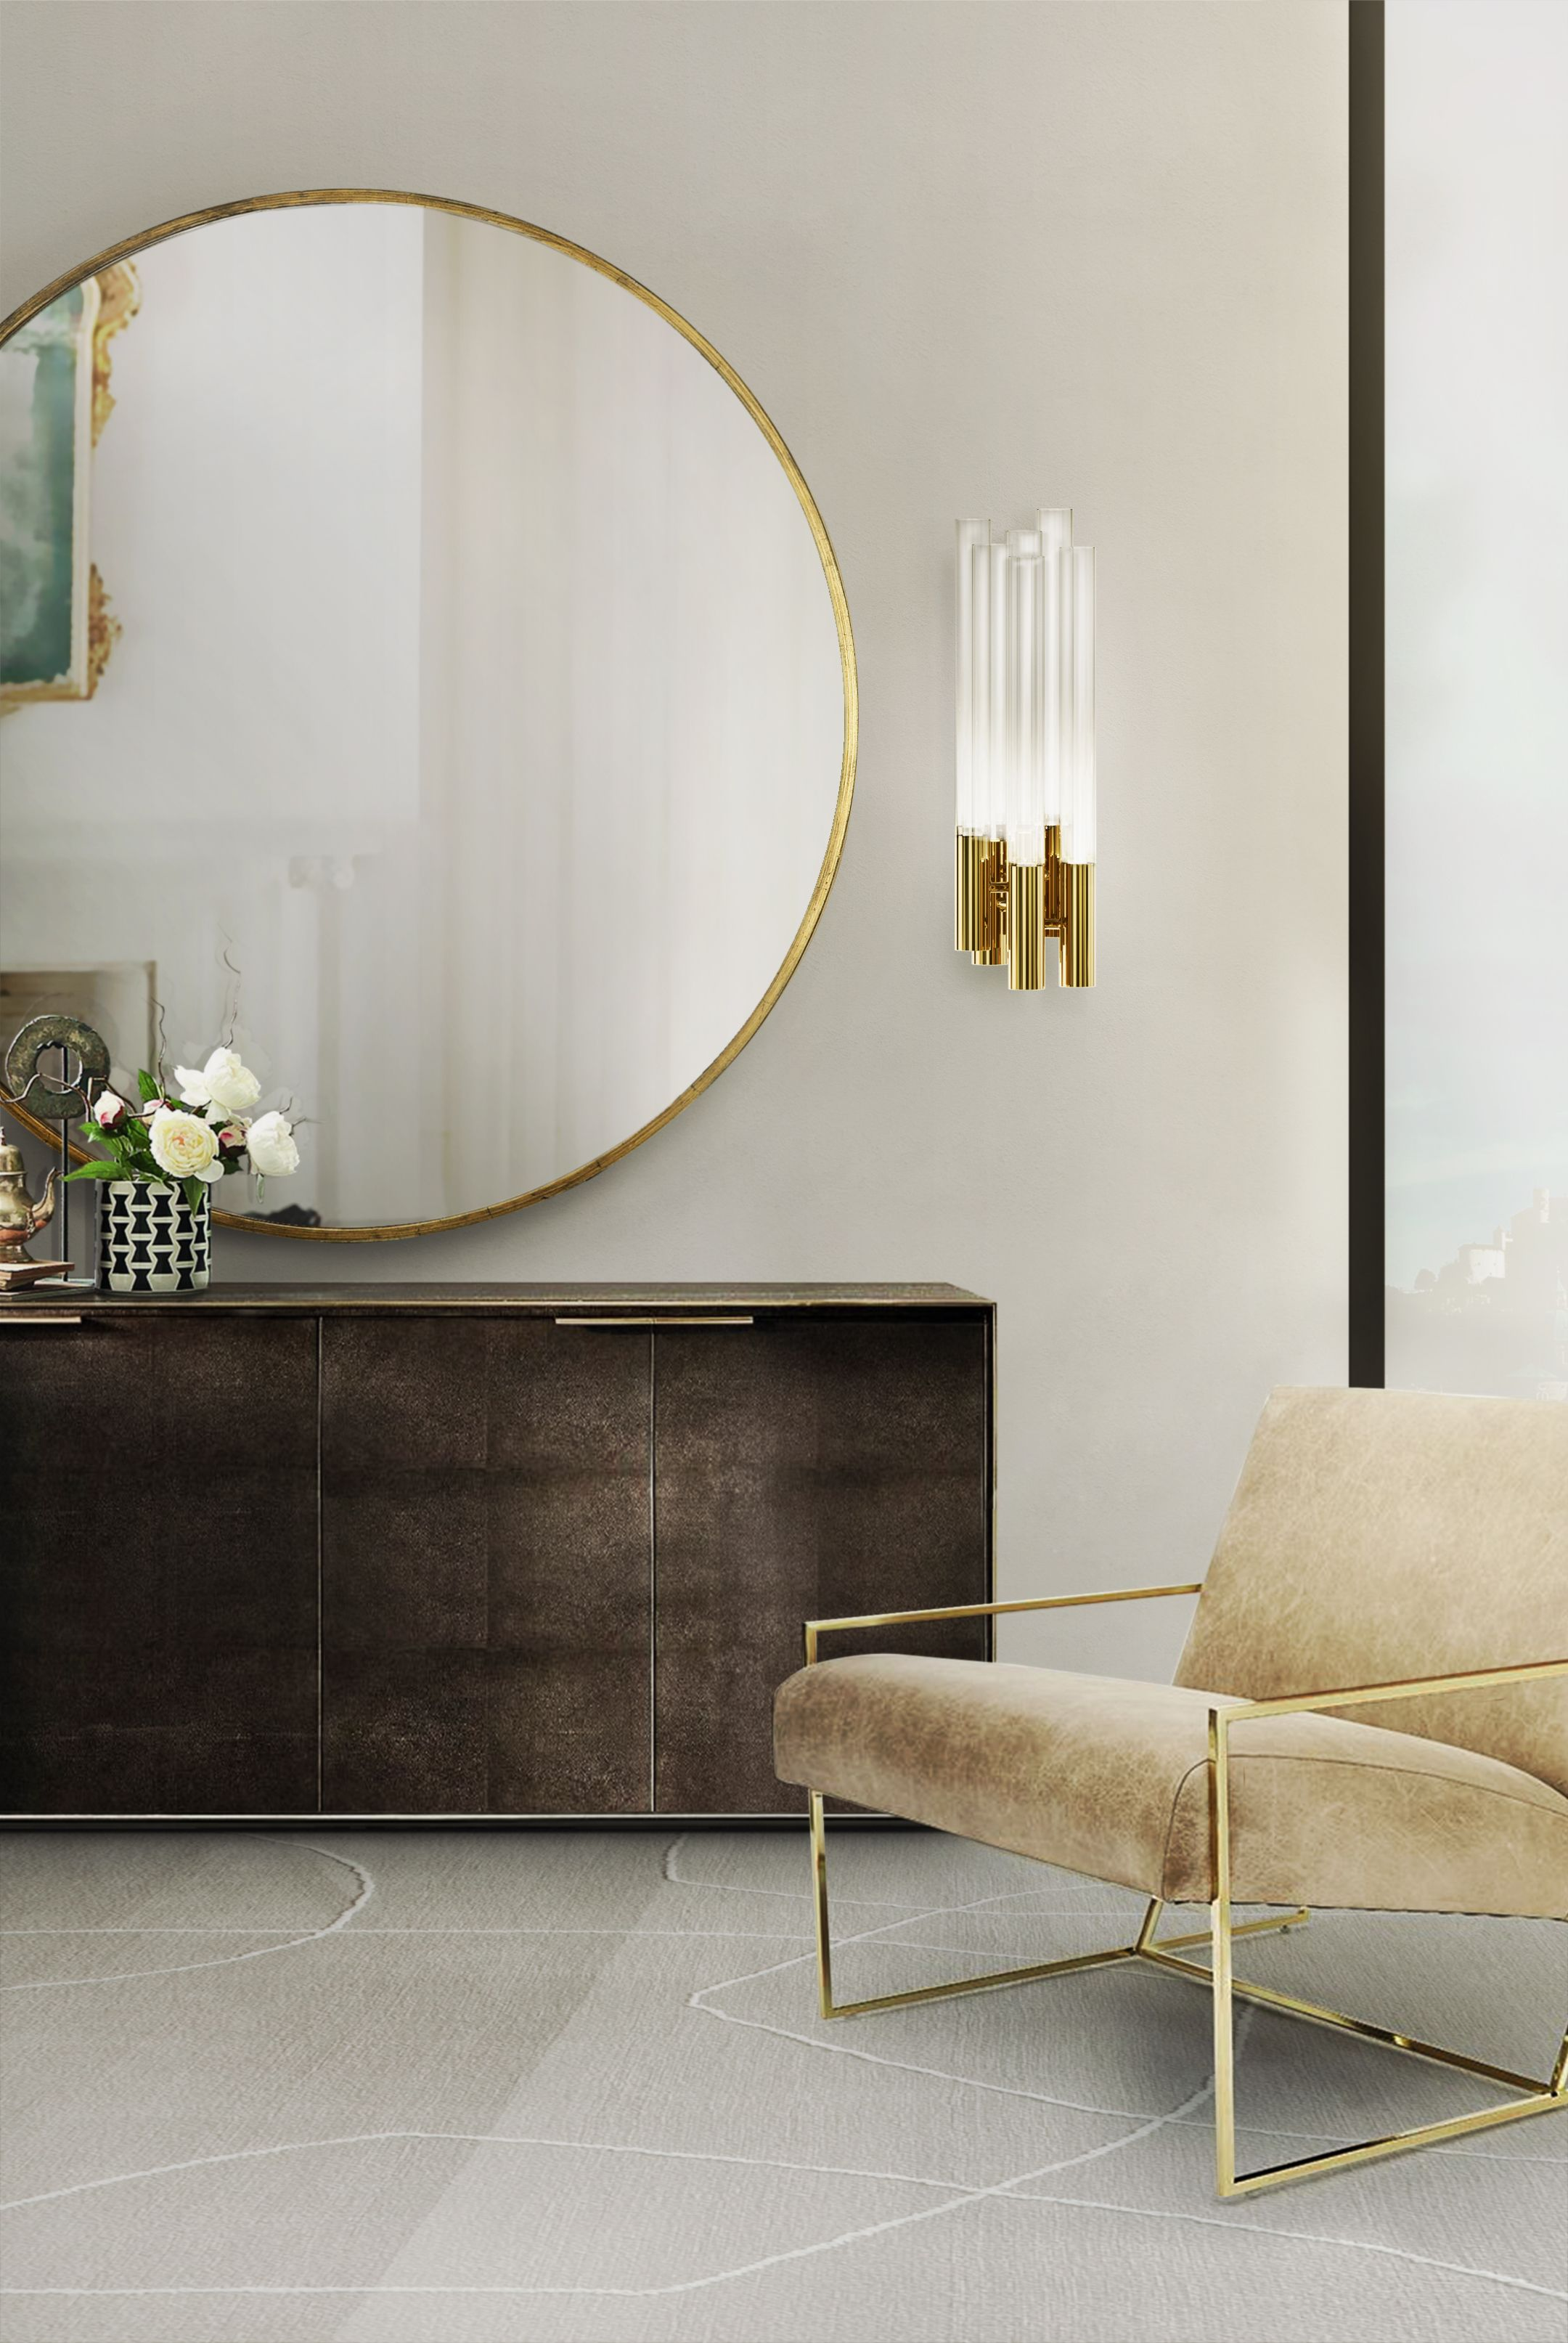 Glamorous Decor create a glamorous decor with luxxu's wall lamps | photography